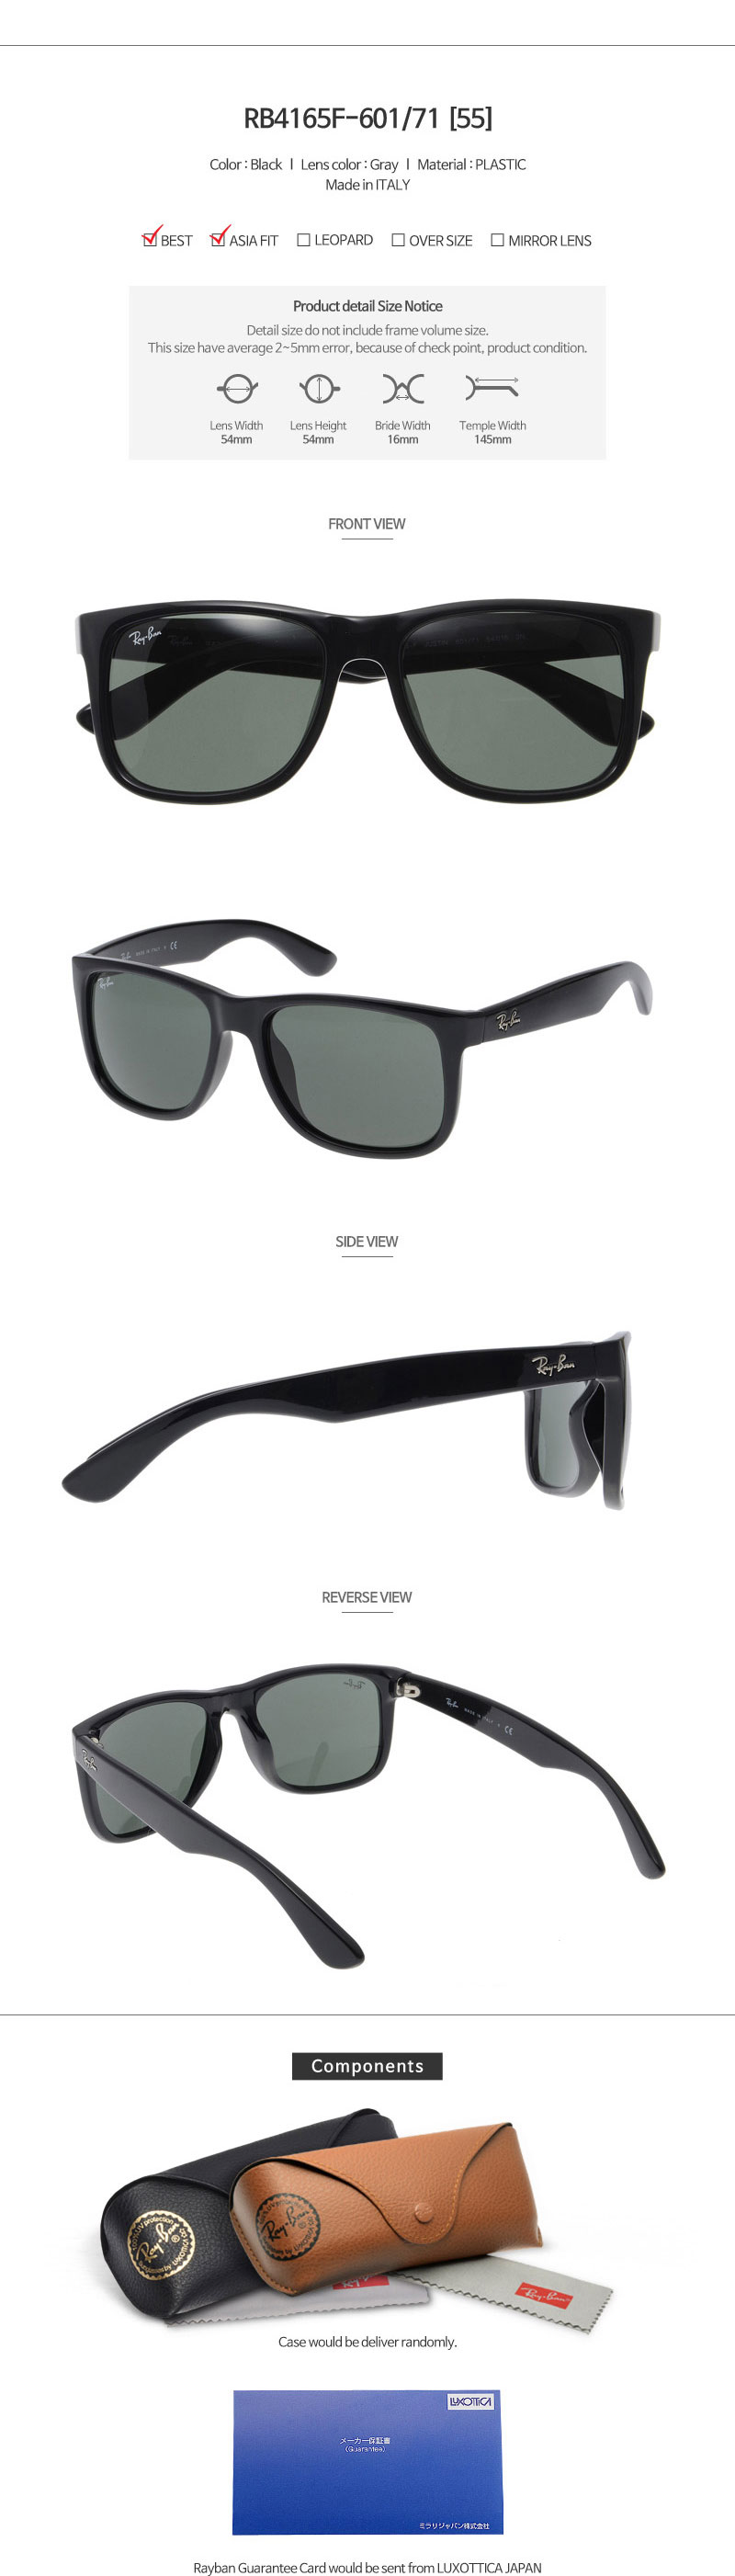 ade7d0e14f Ray Ban Warranty Period